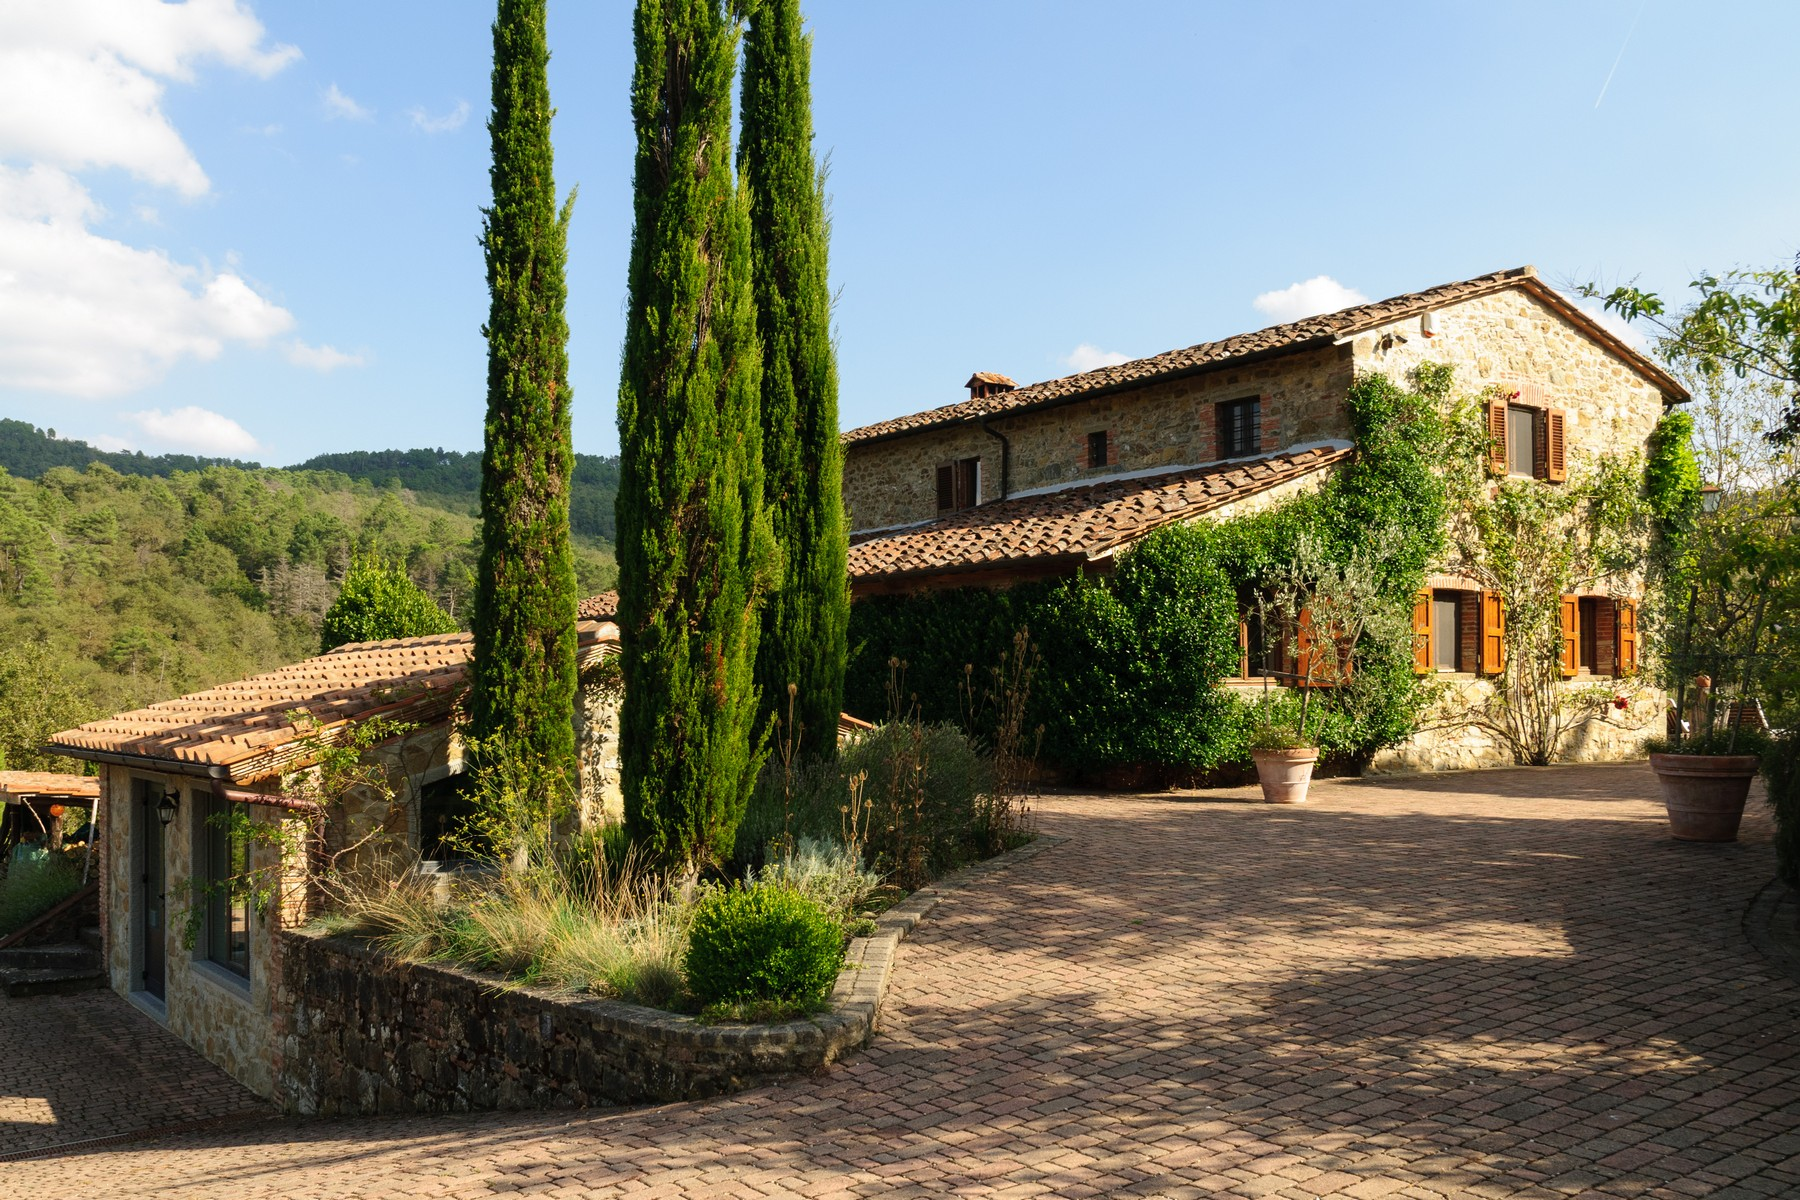 Single Family Home for Sale at Country Retreat in Chianti Classico Siena, Siena, Italy